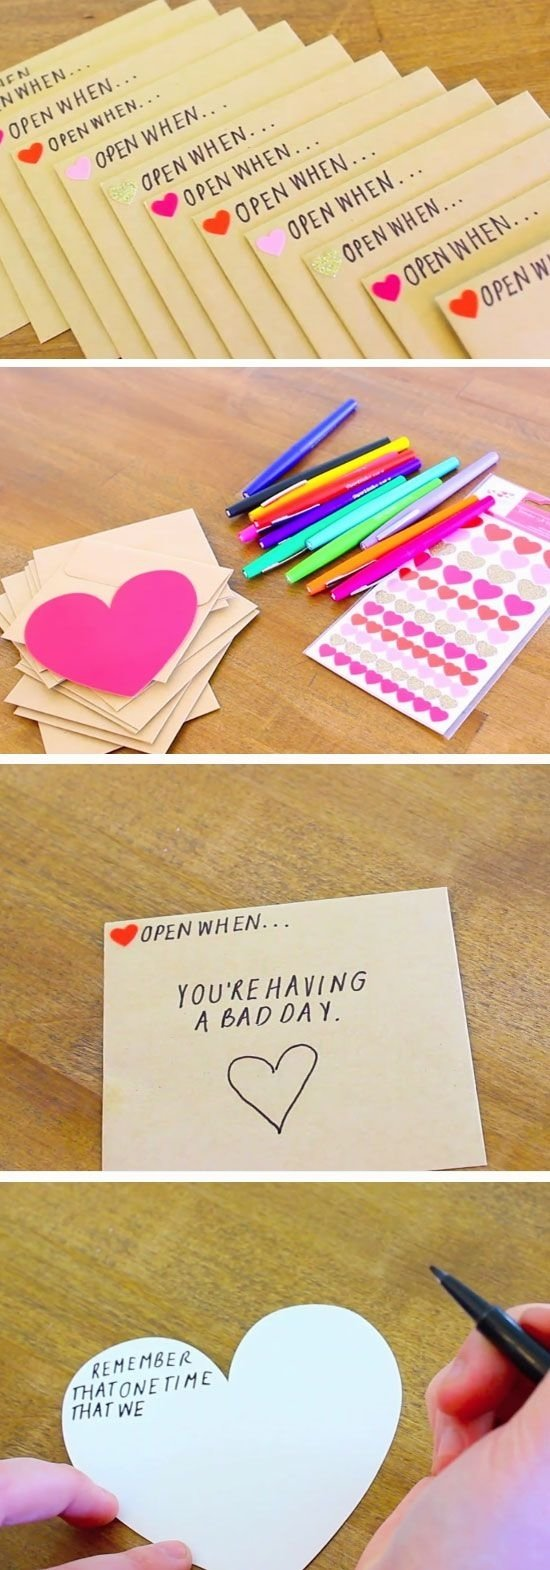 10 Gorgeous Homemade Valentine Ideas For Him 32 diy valentines crafts for boyfriend diy birthday valentine 6